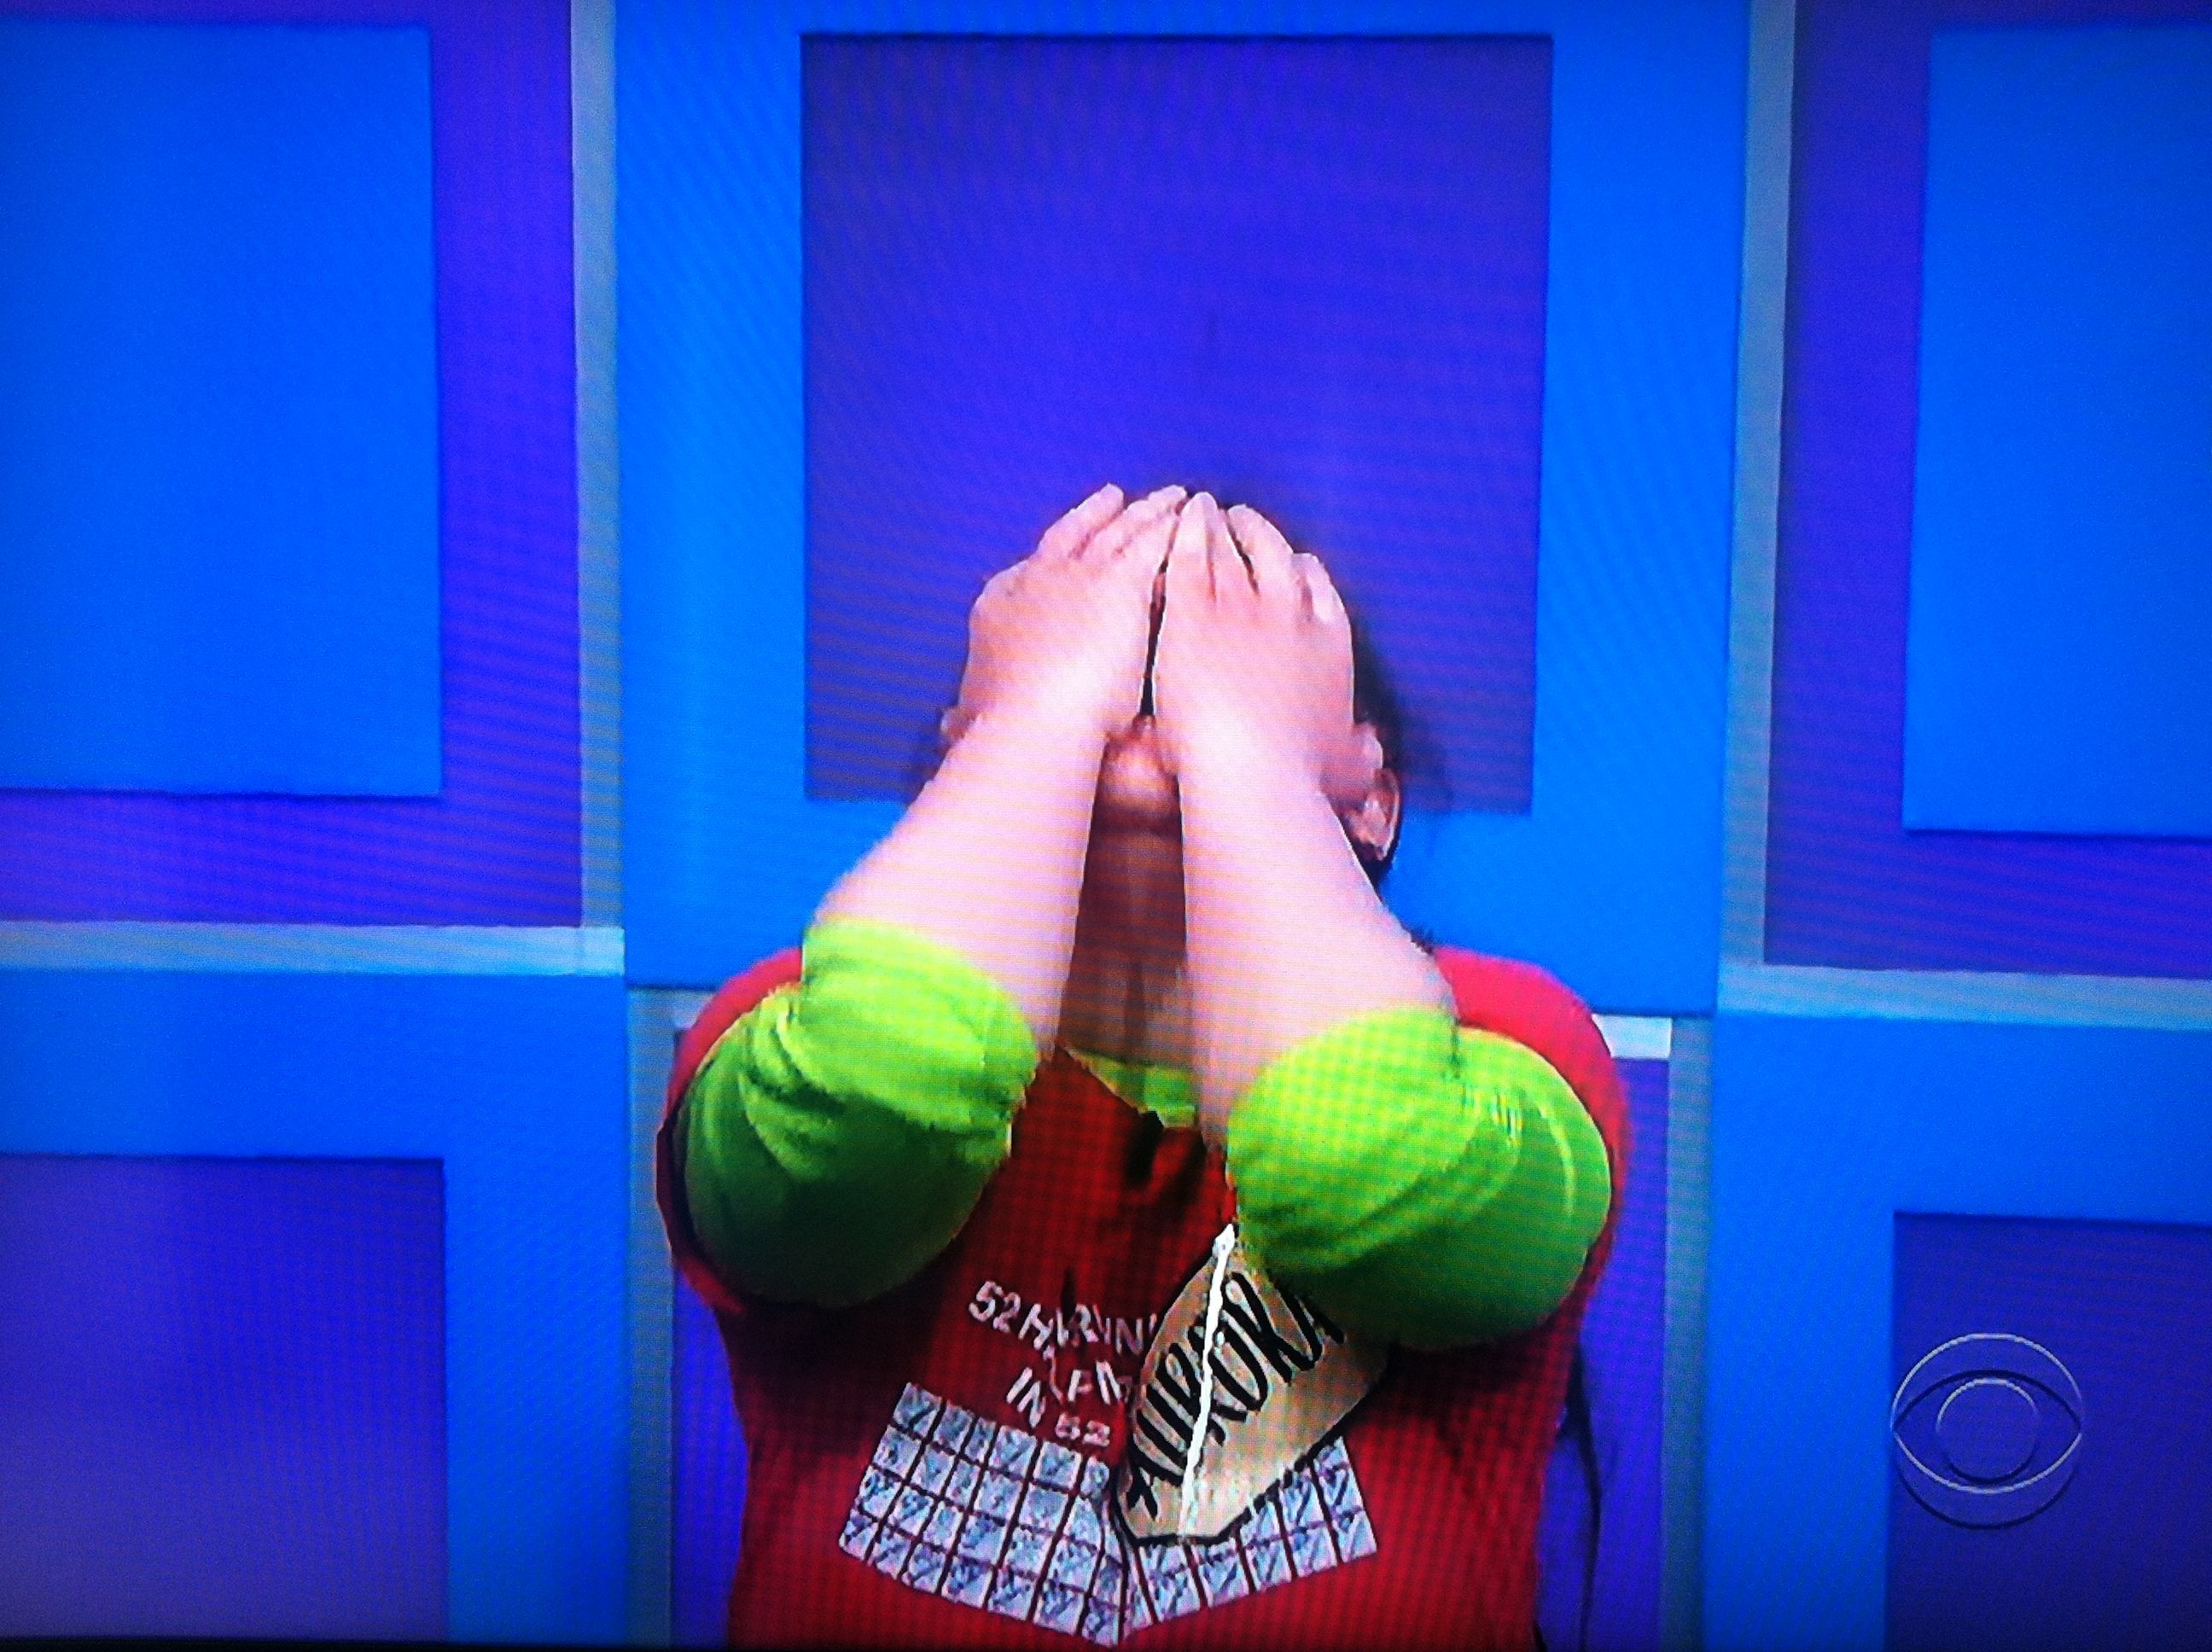 Aurora De Lucia kneeling down with her hands over her face after she learns she's playing for a brand new car on The Price is Right